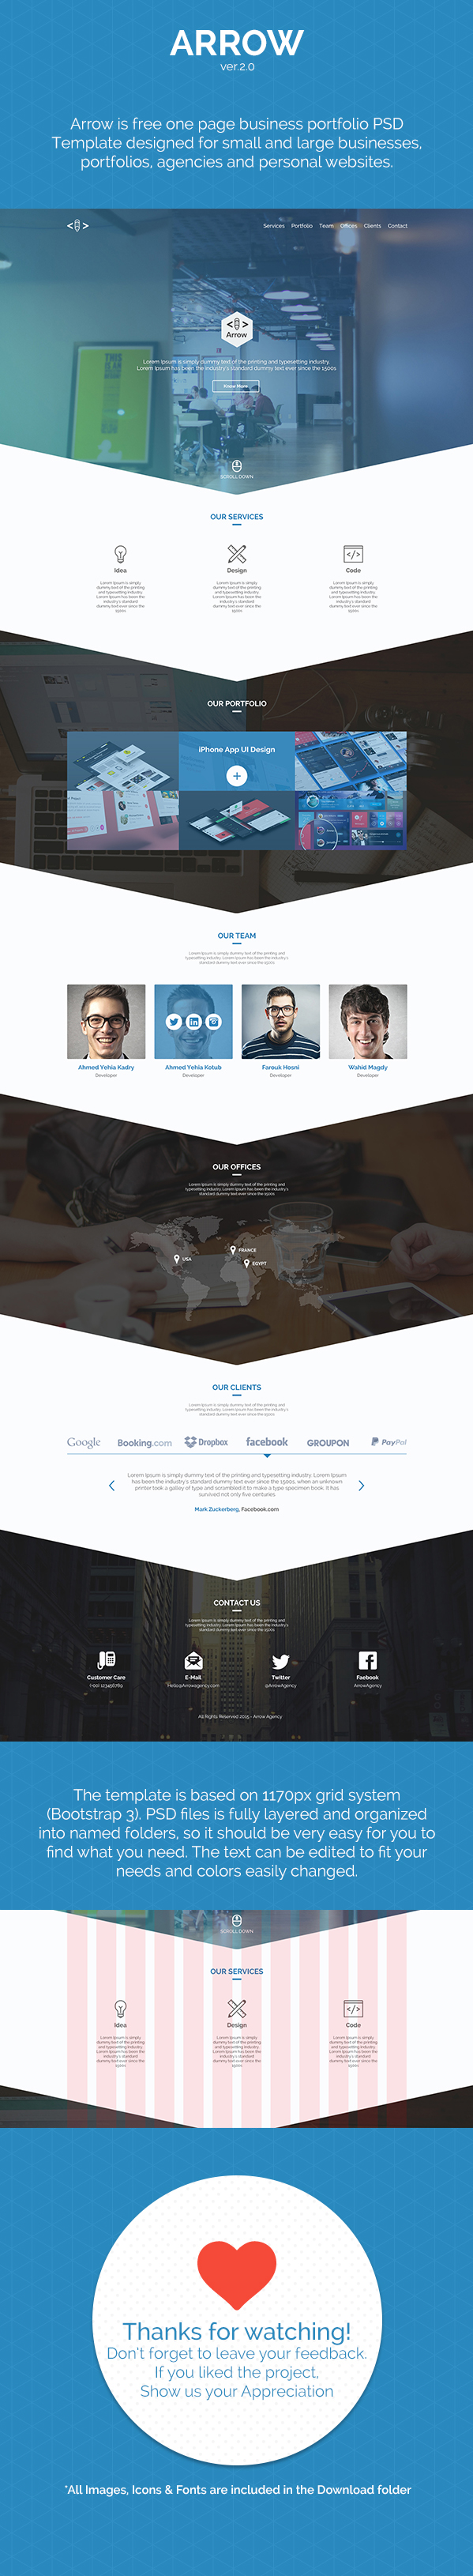 Arrow free one page business portfolio psd template on behance arrow free one page business portfolio psd template on behance flashek Images